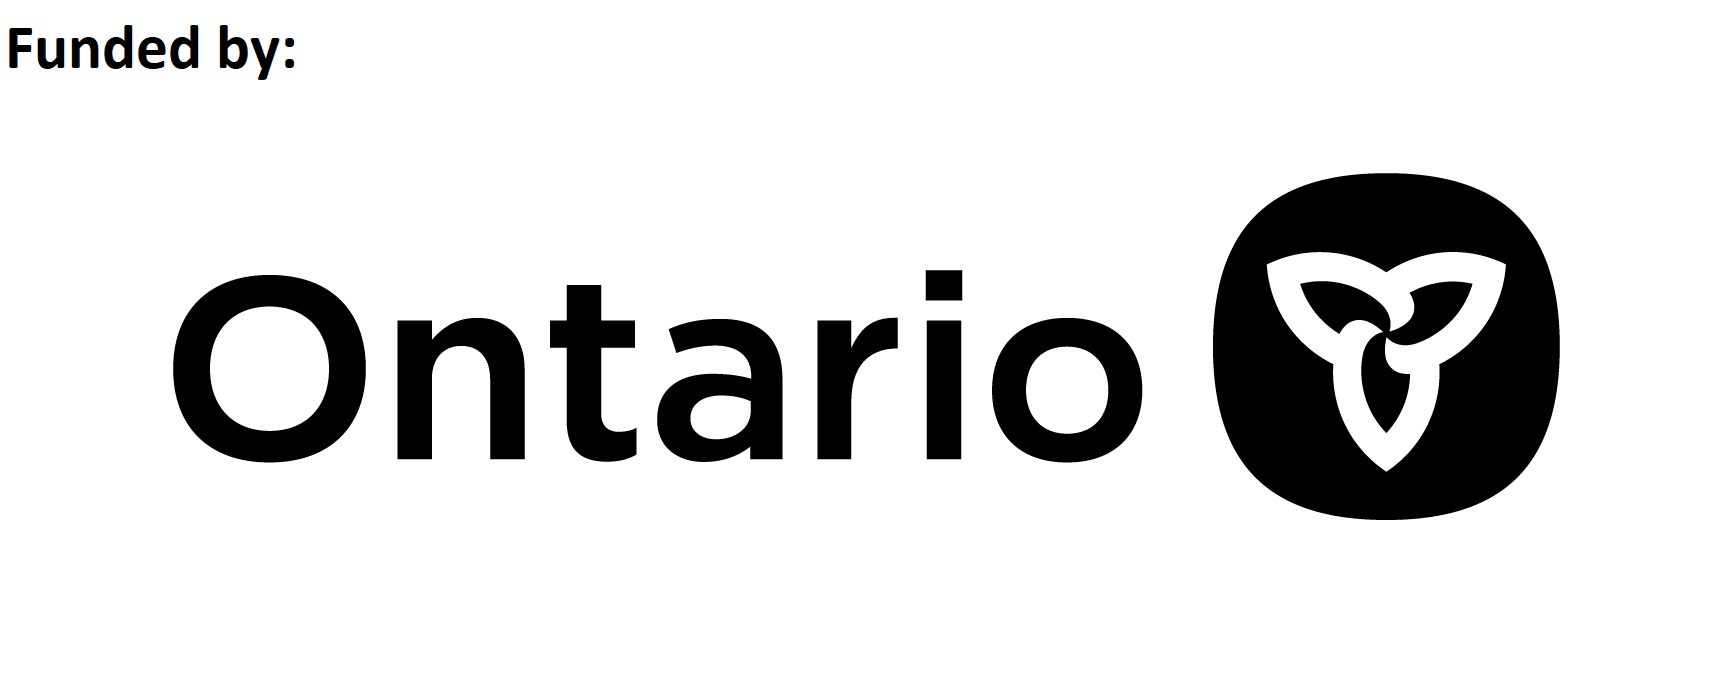 Funded by Ontario